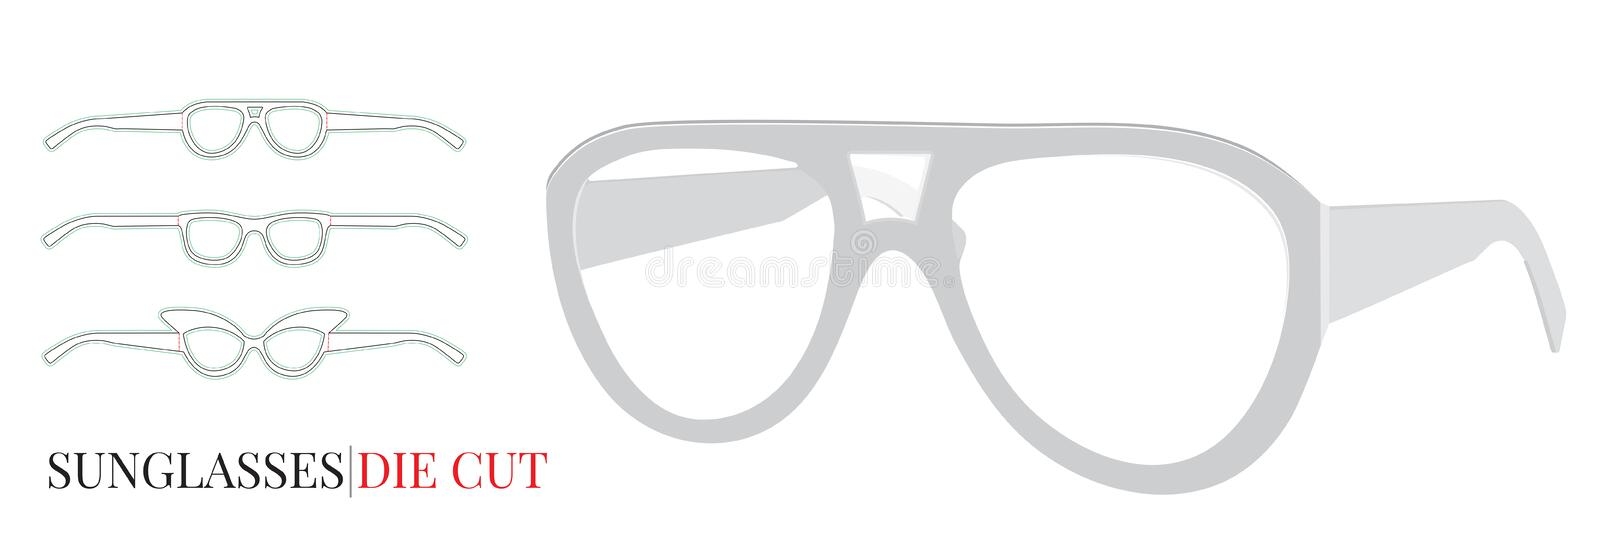 Paper Glasses Template, Vector with die cut / laser cut layers royalty free illustration